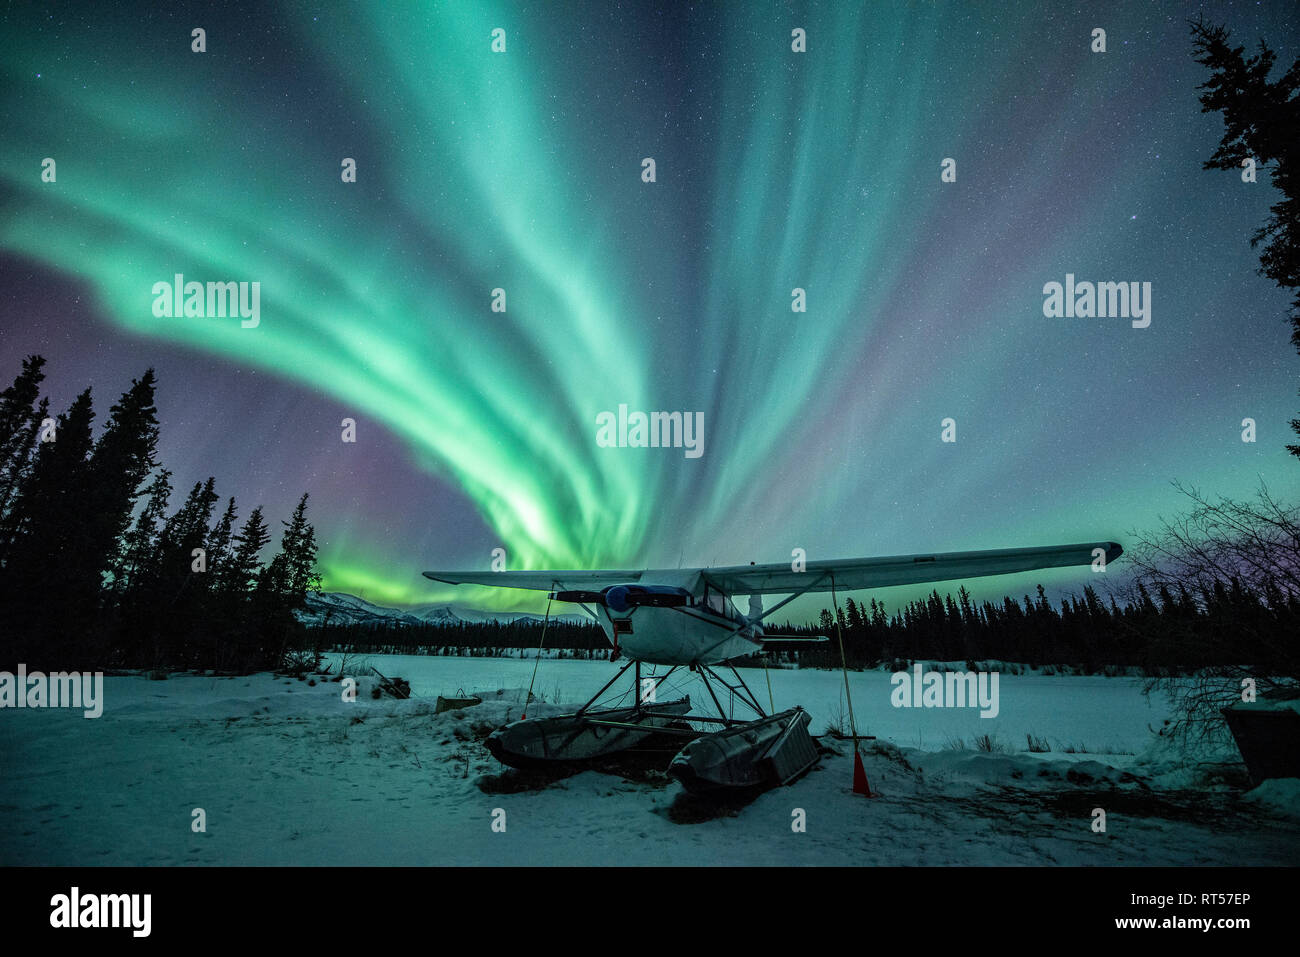 Northern lights above a plane at night, Whitehorse, Yukon, Canada